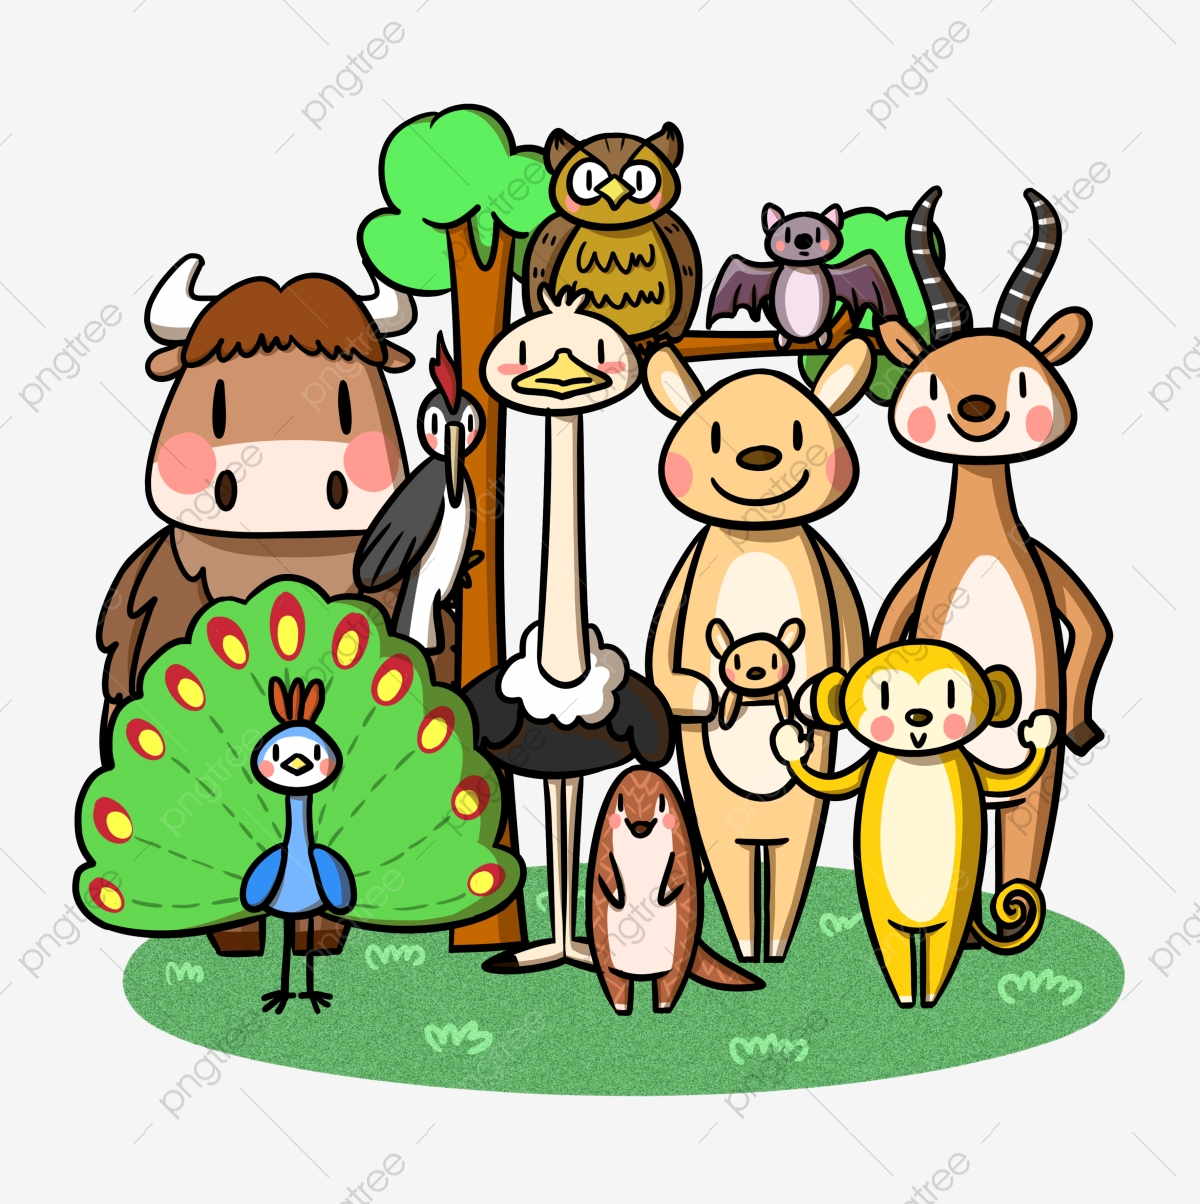 hight resolution of commercial use resource upgrade to premium plan and get license authorization upgradenow animal world animal clipart